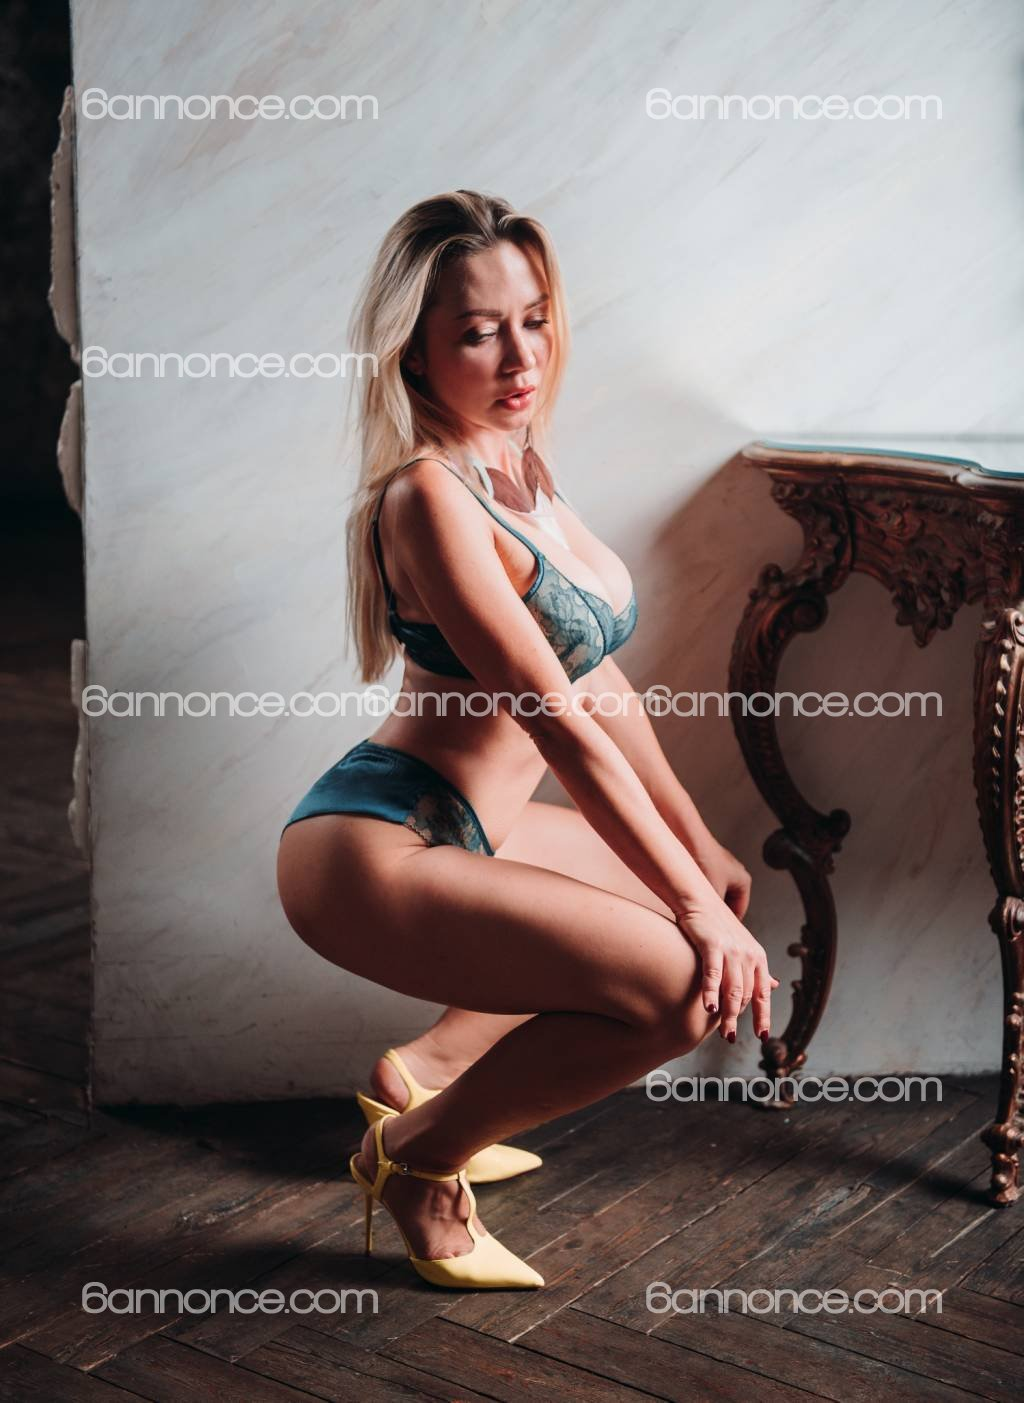 yana duo full service 131269